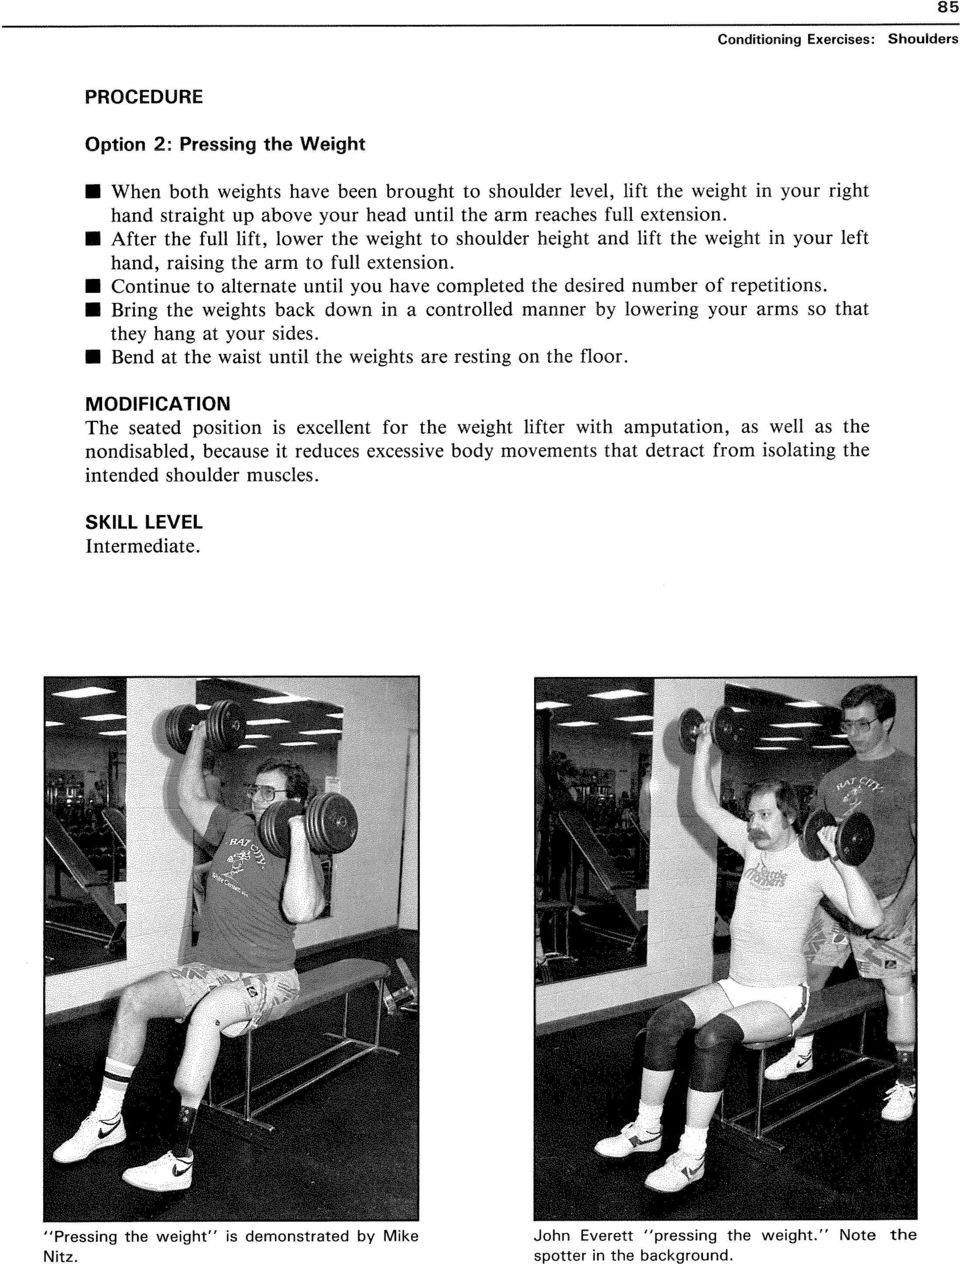 Continue to alternate until you have completed the desired number of repetitions. Bring the weights back down in a controlled manner by lowering your arms so that they hang at your sides.